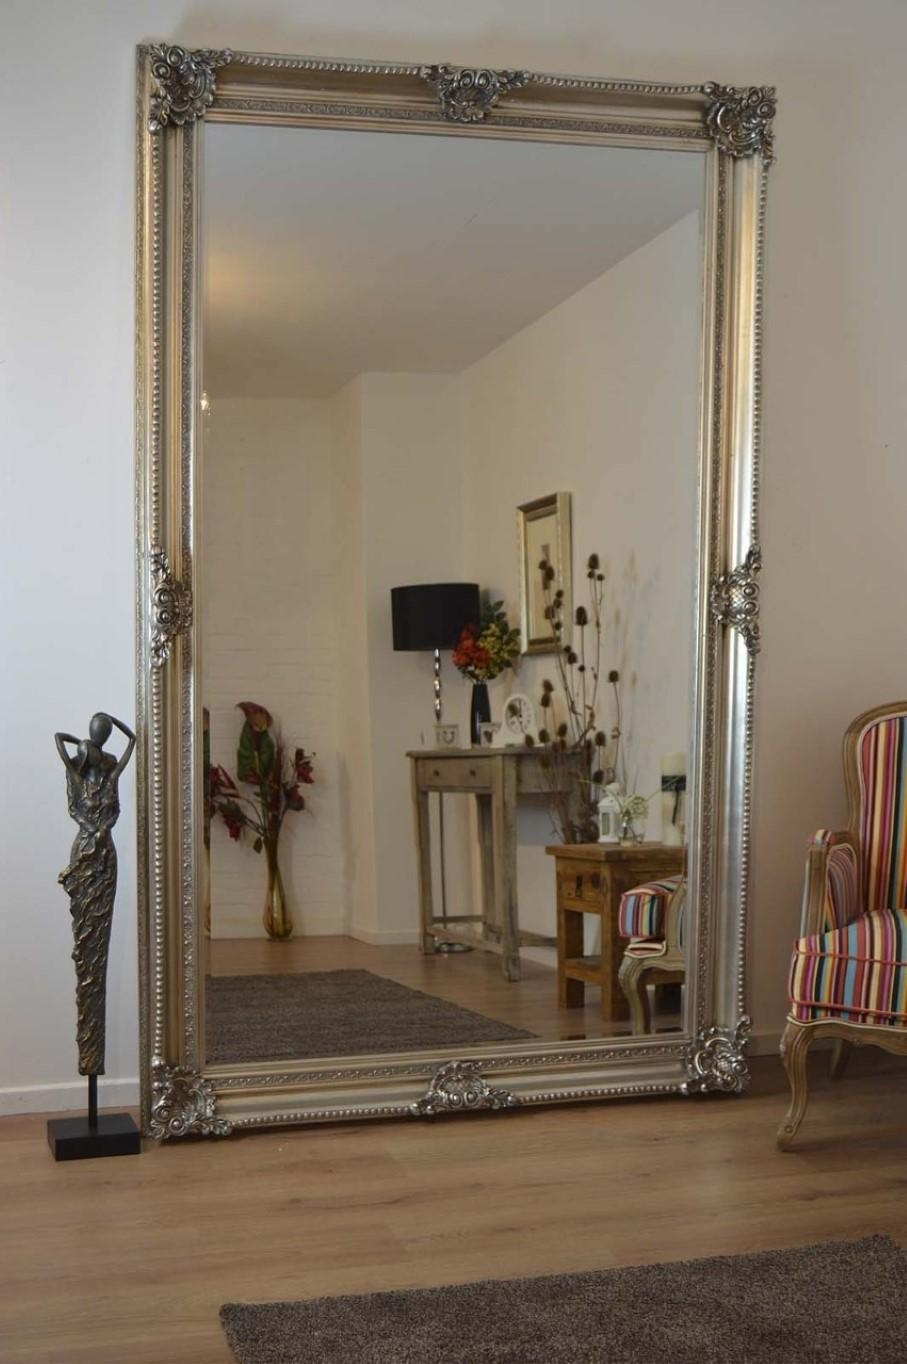 Ceiling Mirrors For Sale In 2020 Extra Large Wall Mirrors Mirror Decor Large Wall Mirror #oversized #wall #mirrors #for #living #room